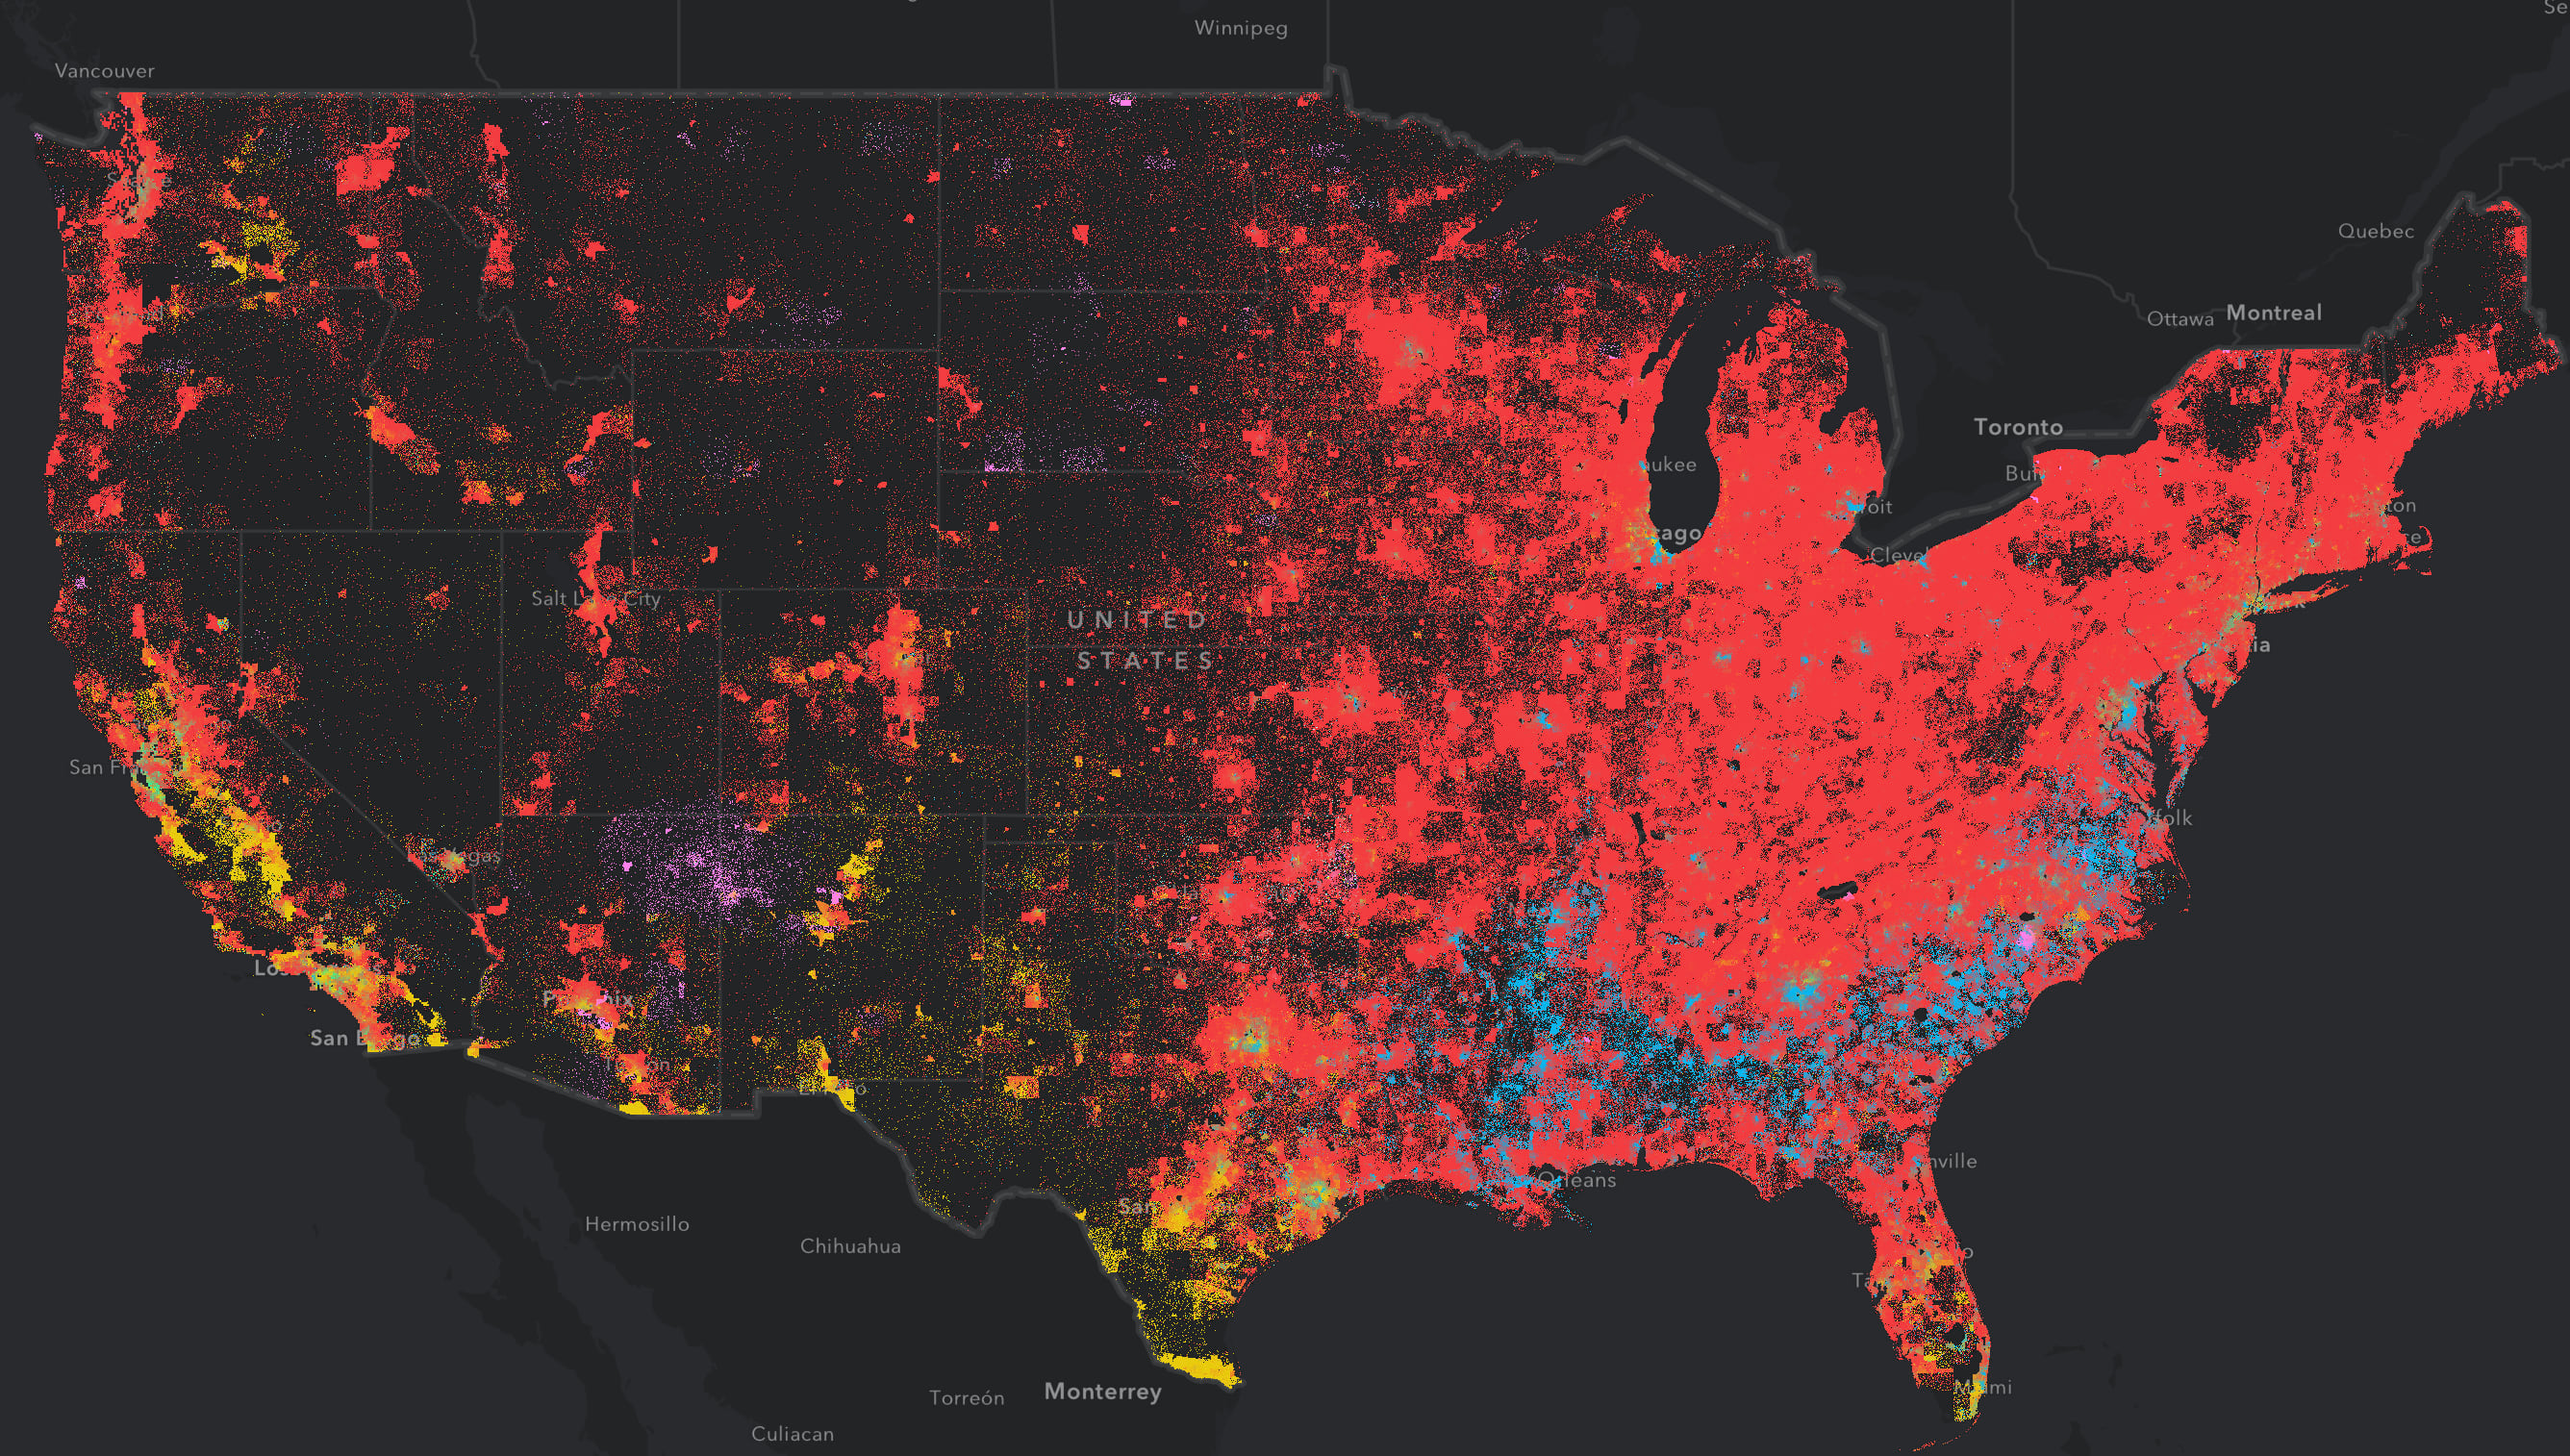 Population density by race in the United States.